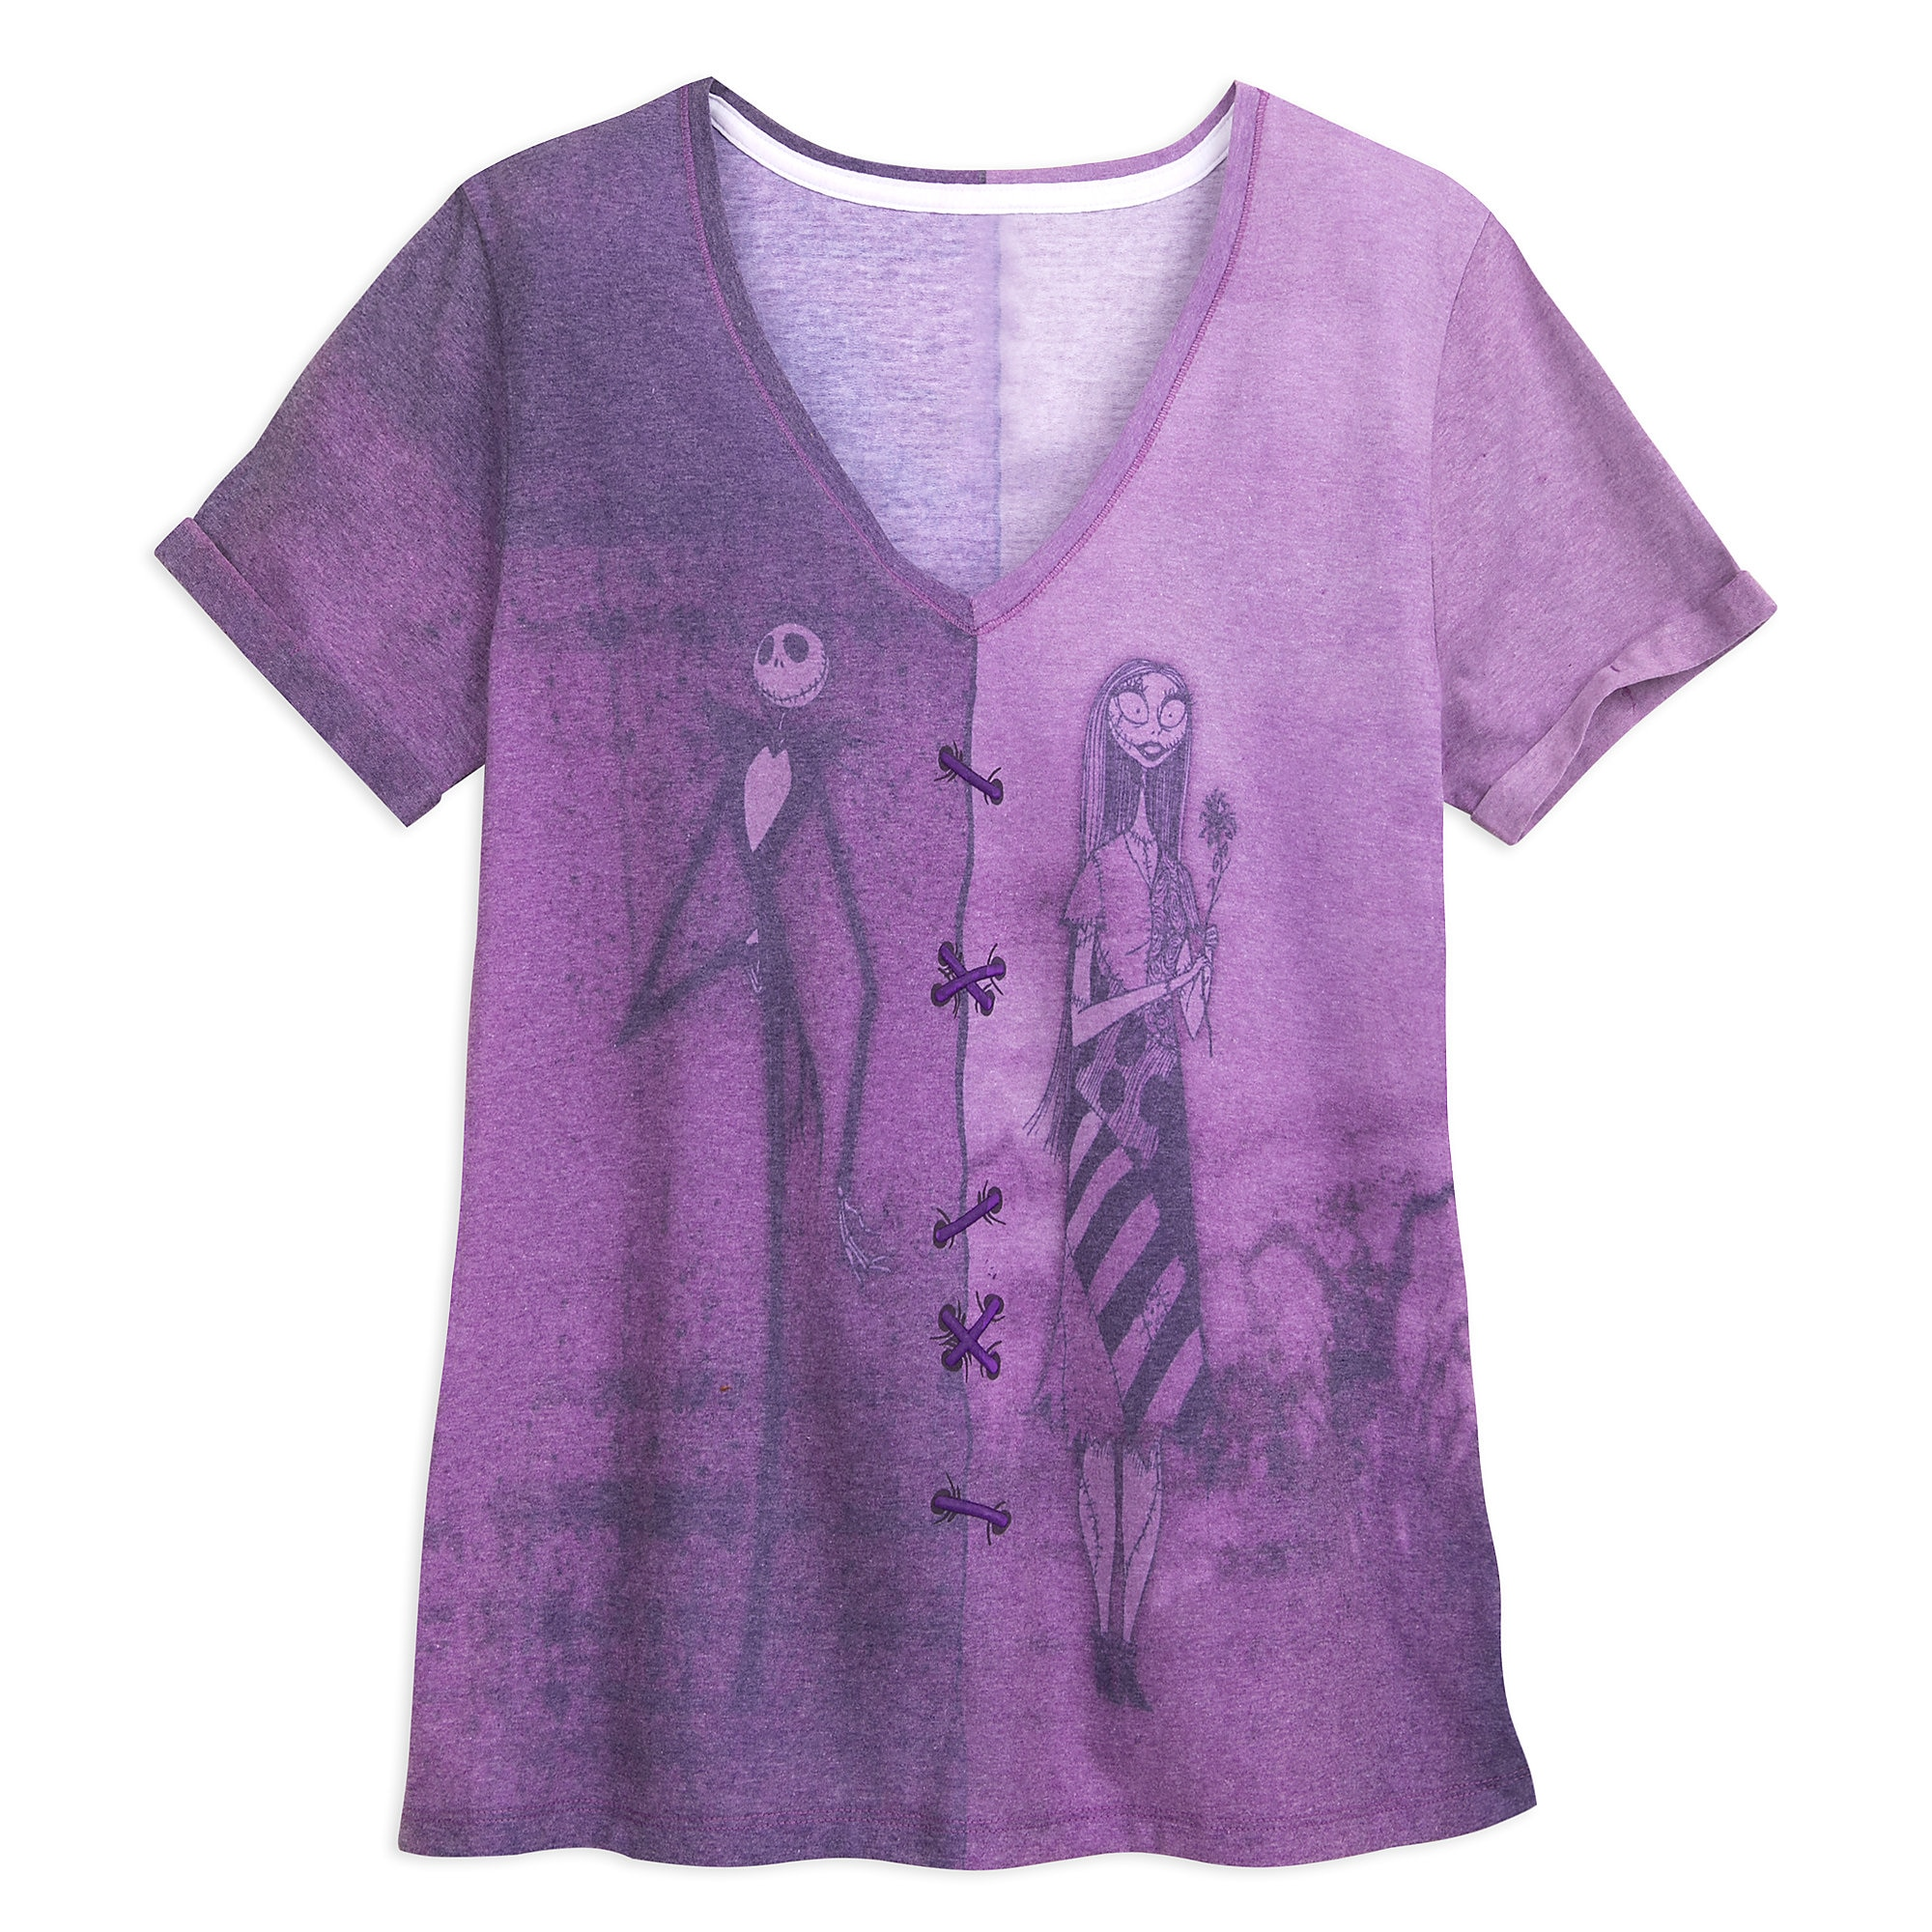 Jack Skellington and Sally Fashion T-Shirt for Women